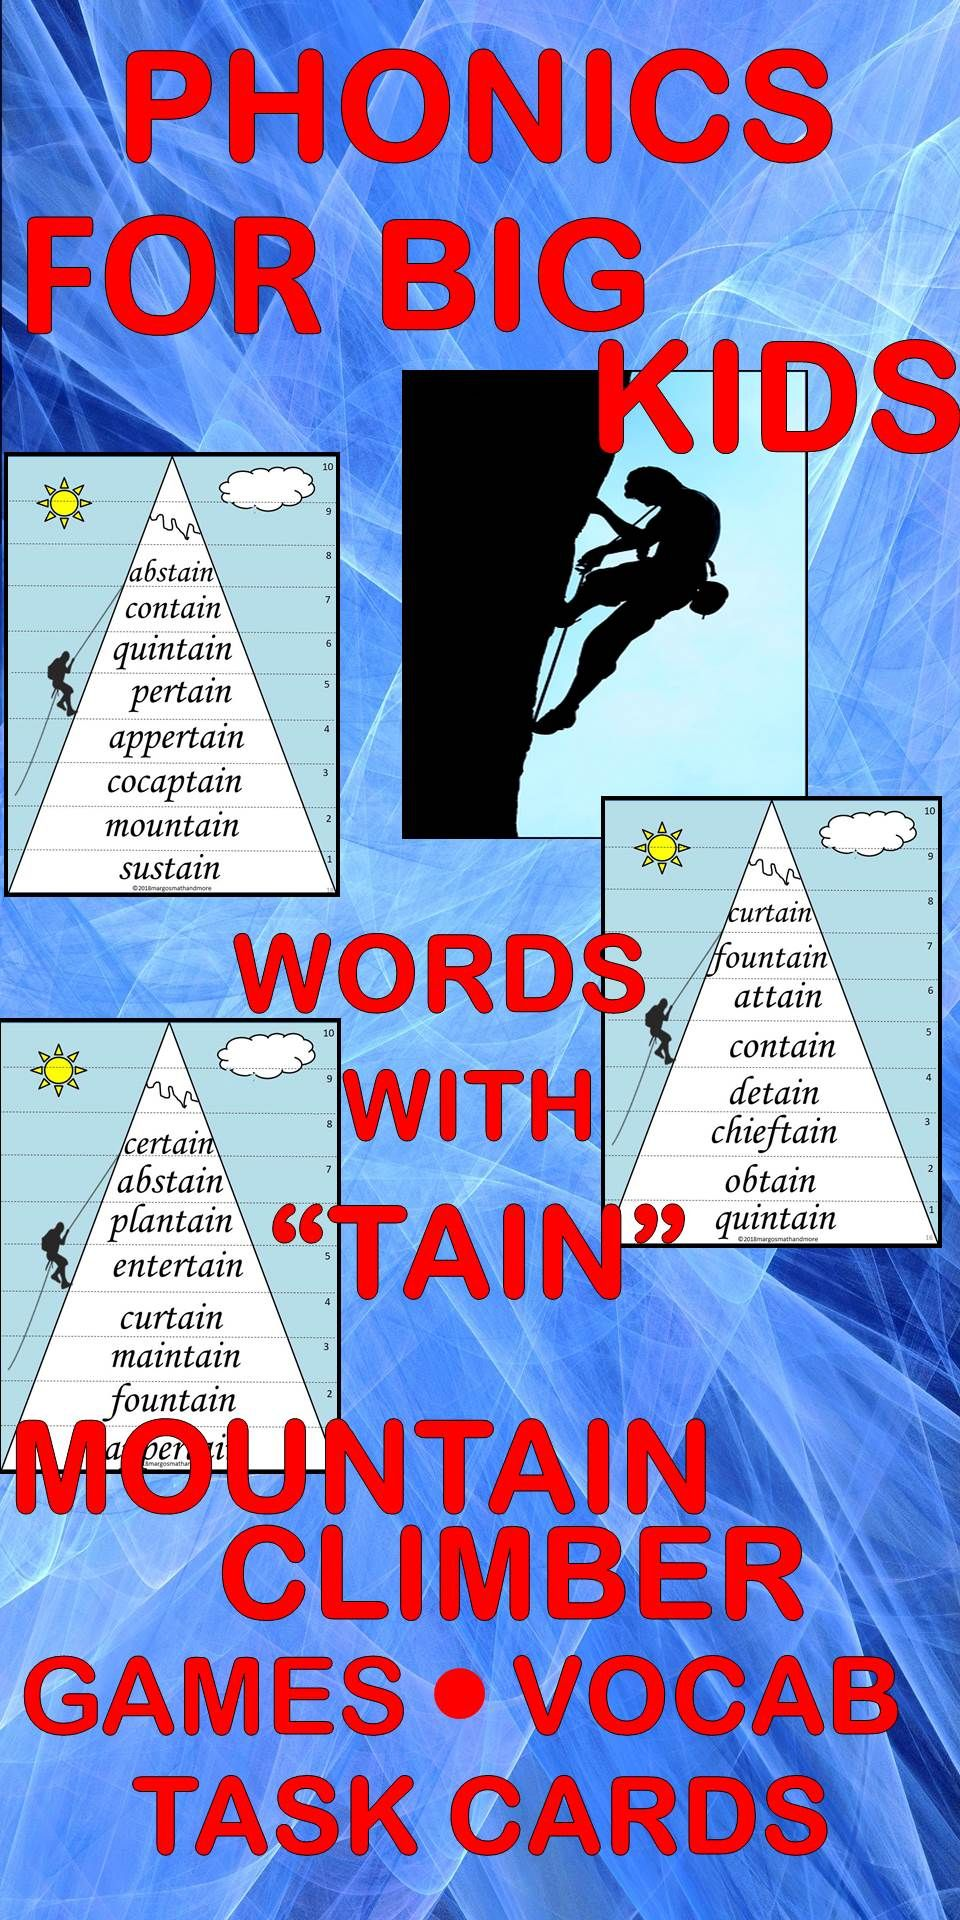 Do You Pronounce Tain With A Long A Sound Or A Schwa Sound Students Will Learn New Words Ending In Tain Through Repeated Ex Phonics Learning Phonics Words [ 1920 x 960 Pixel ]